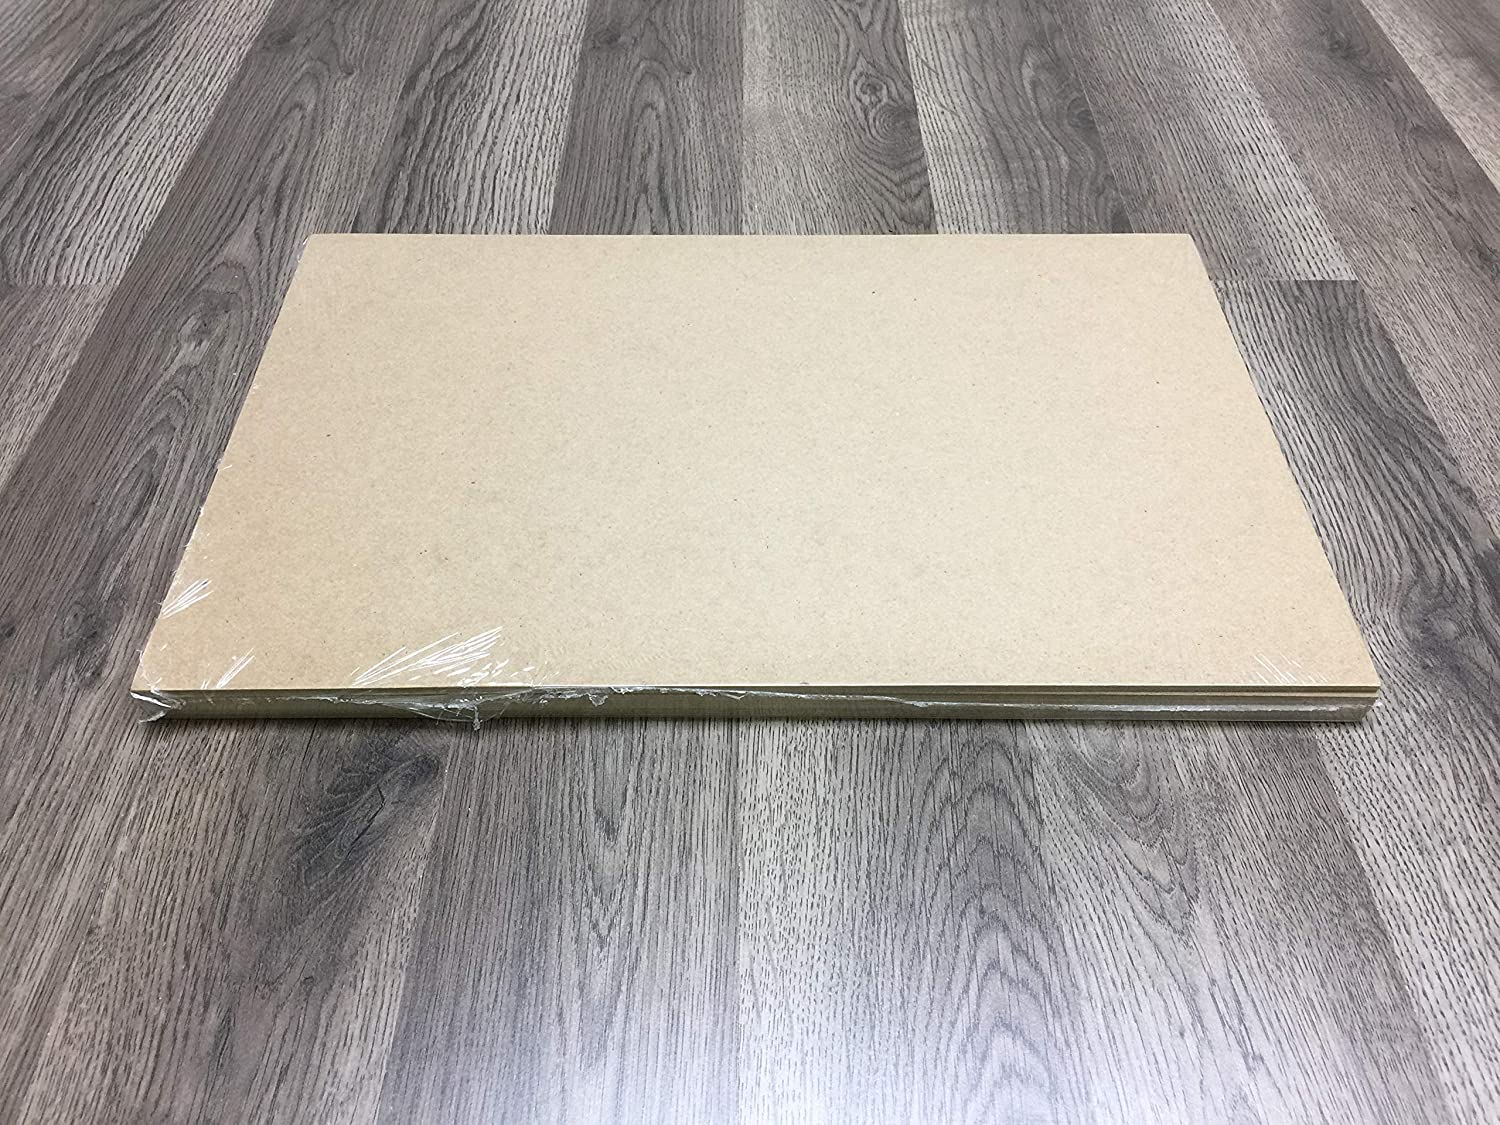 Scrap Booking Medium Weight 11 x 17 Great for Model Building Natural Kraft Brown 25 Sheets Studio 12 Chipboard Sheets Creative Projects and Protecting Valuable Photos and documents.